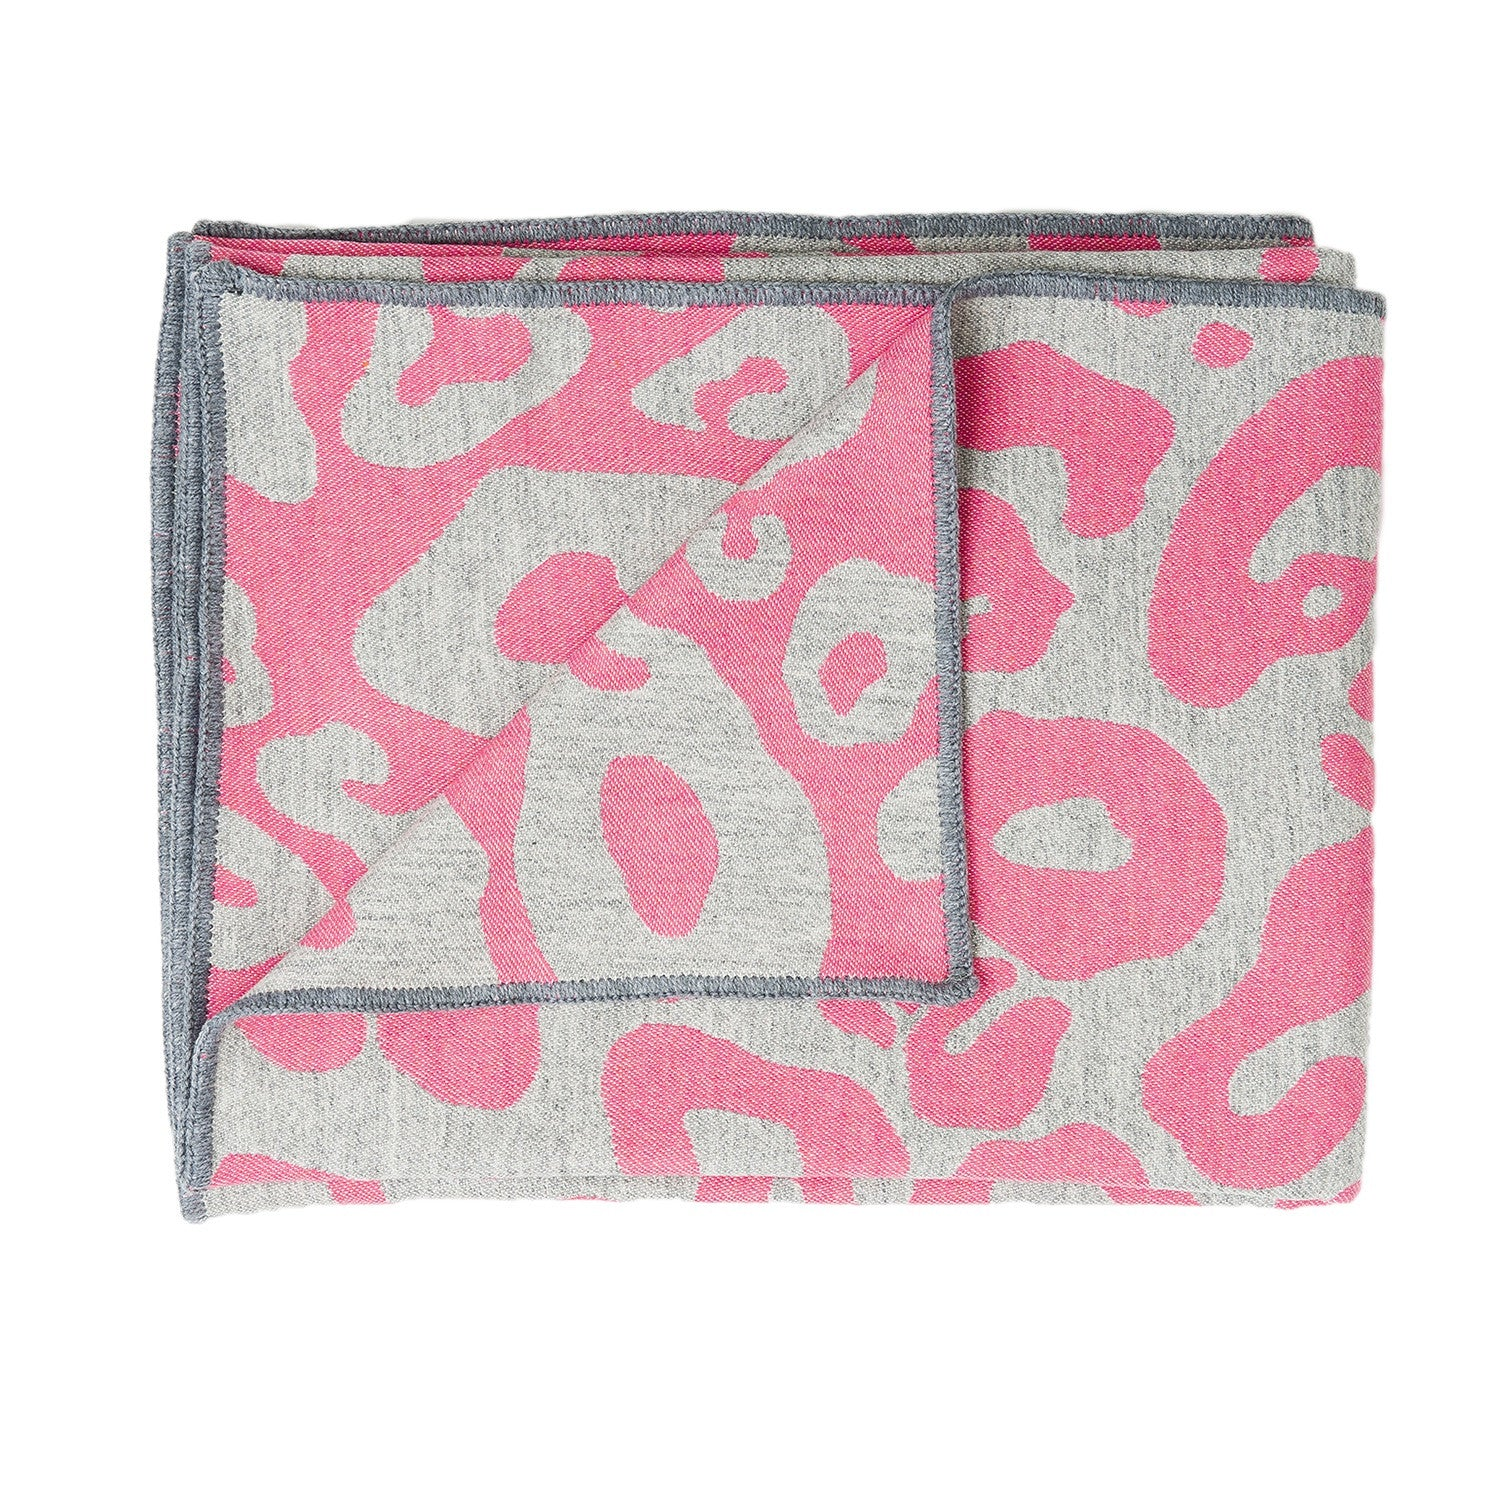 Hamilton Large Spot Throw Hot Pink and Grey